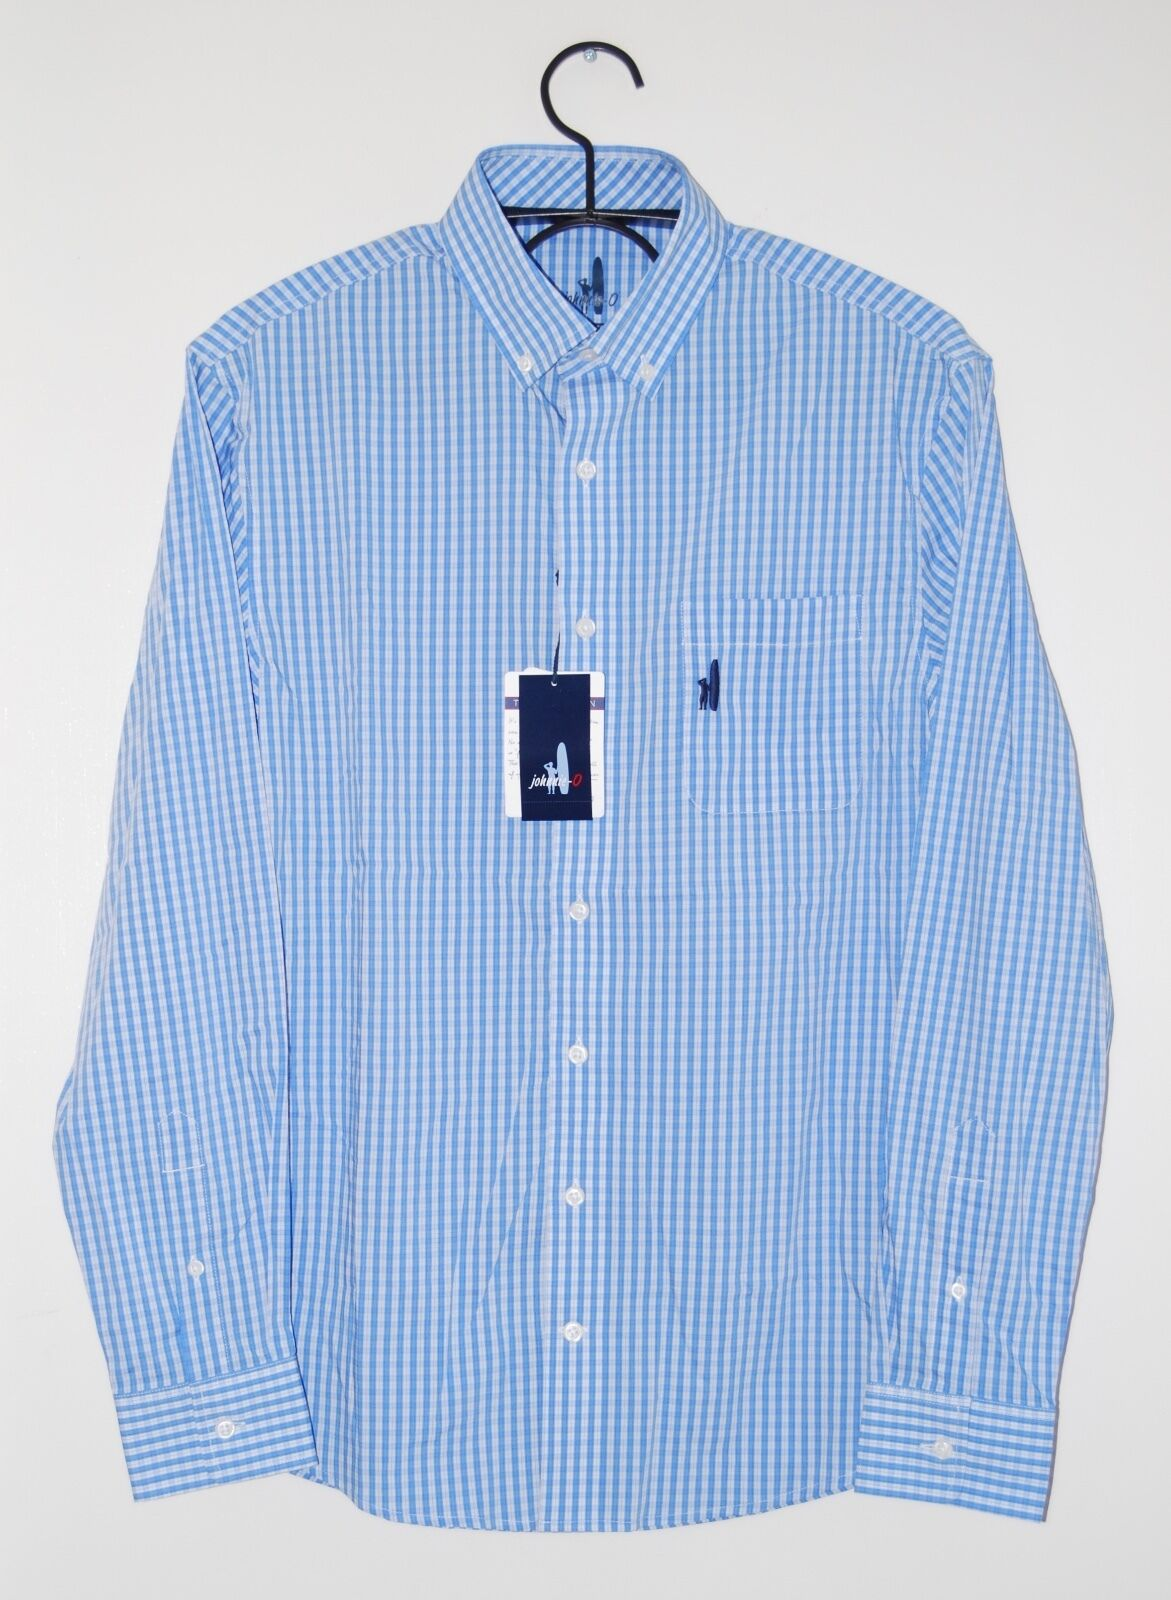 Johnnie O. Prep-Formance Men's Dawn bluee Plaid Booker LS Button-down Shirt Sz S